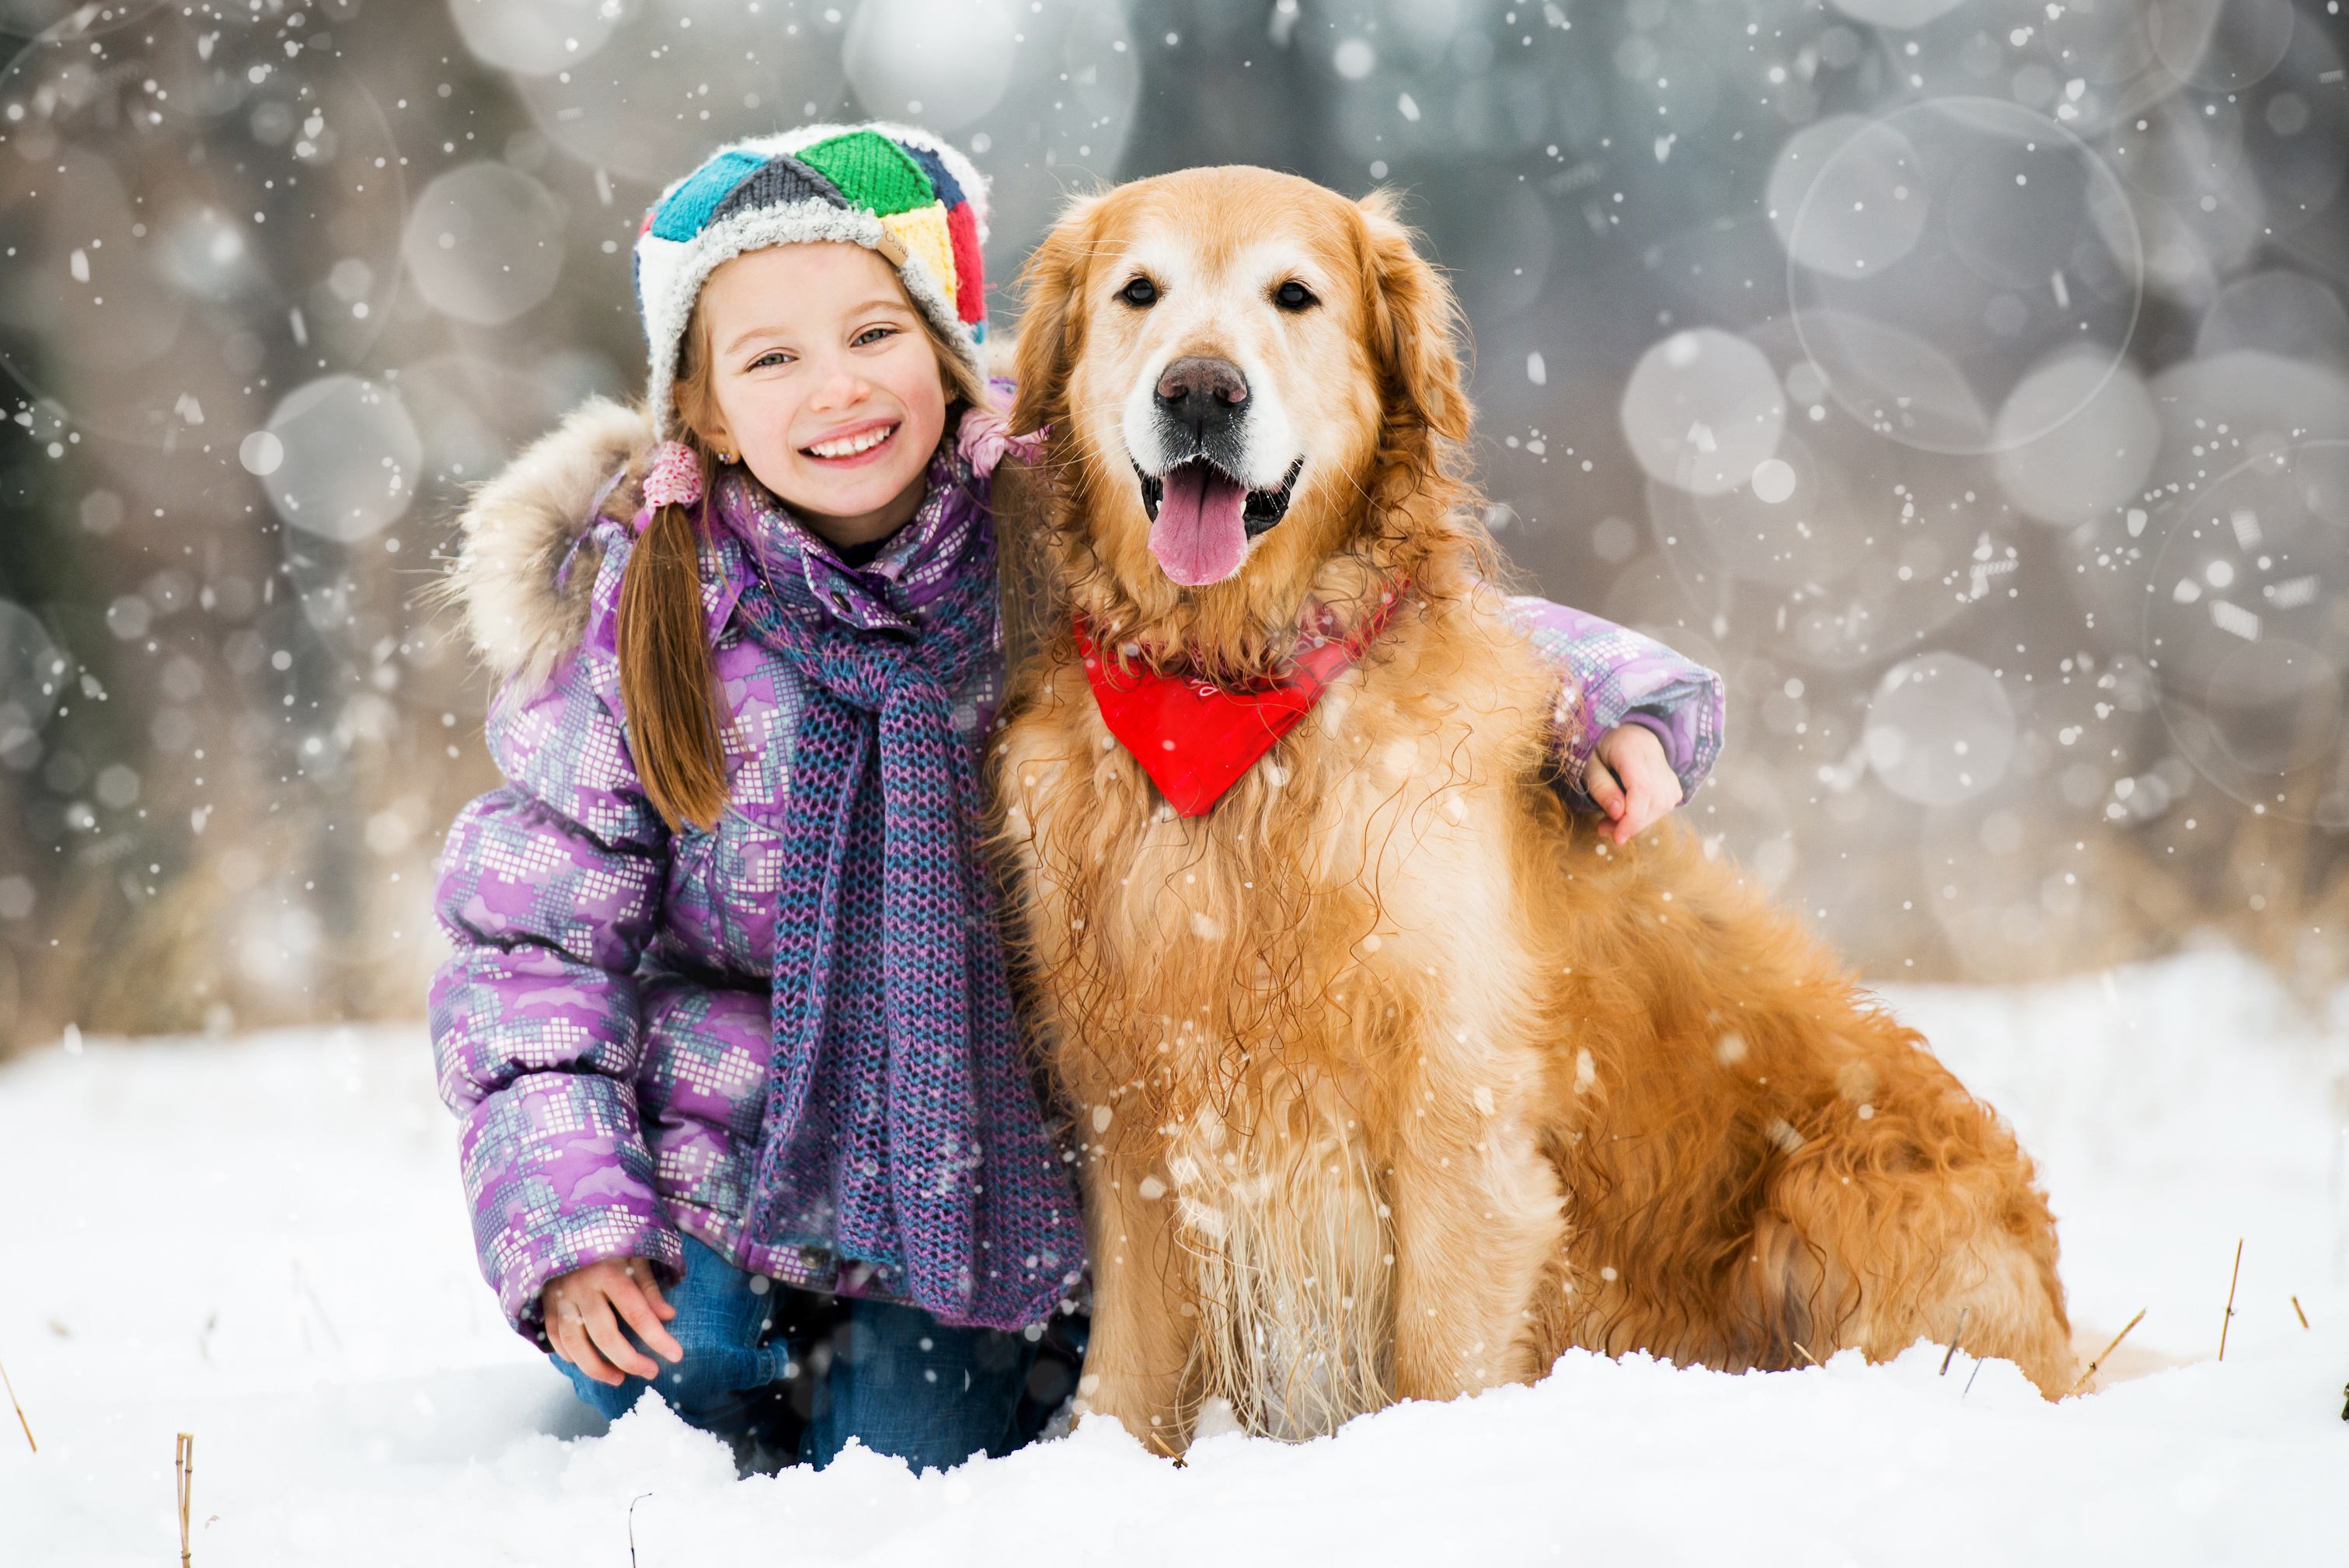 little-girl-in-snow-with-dog